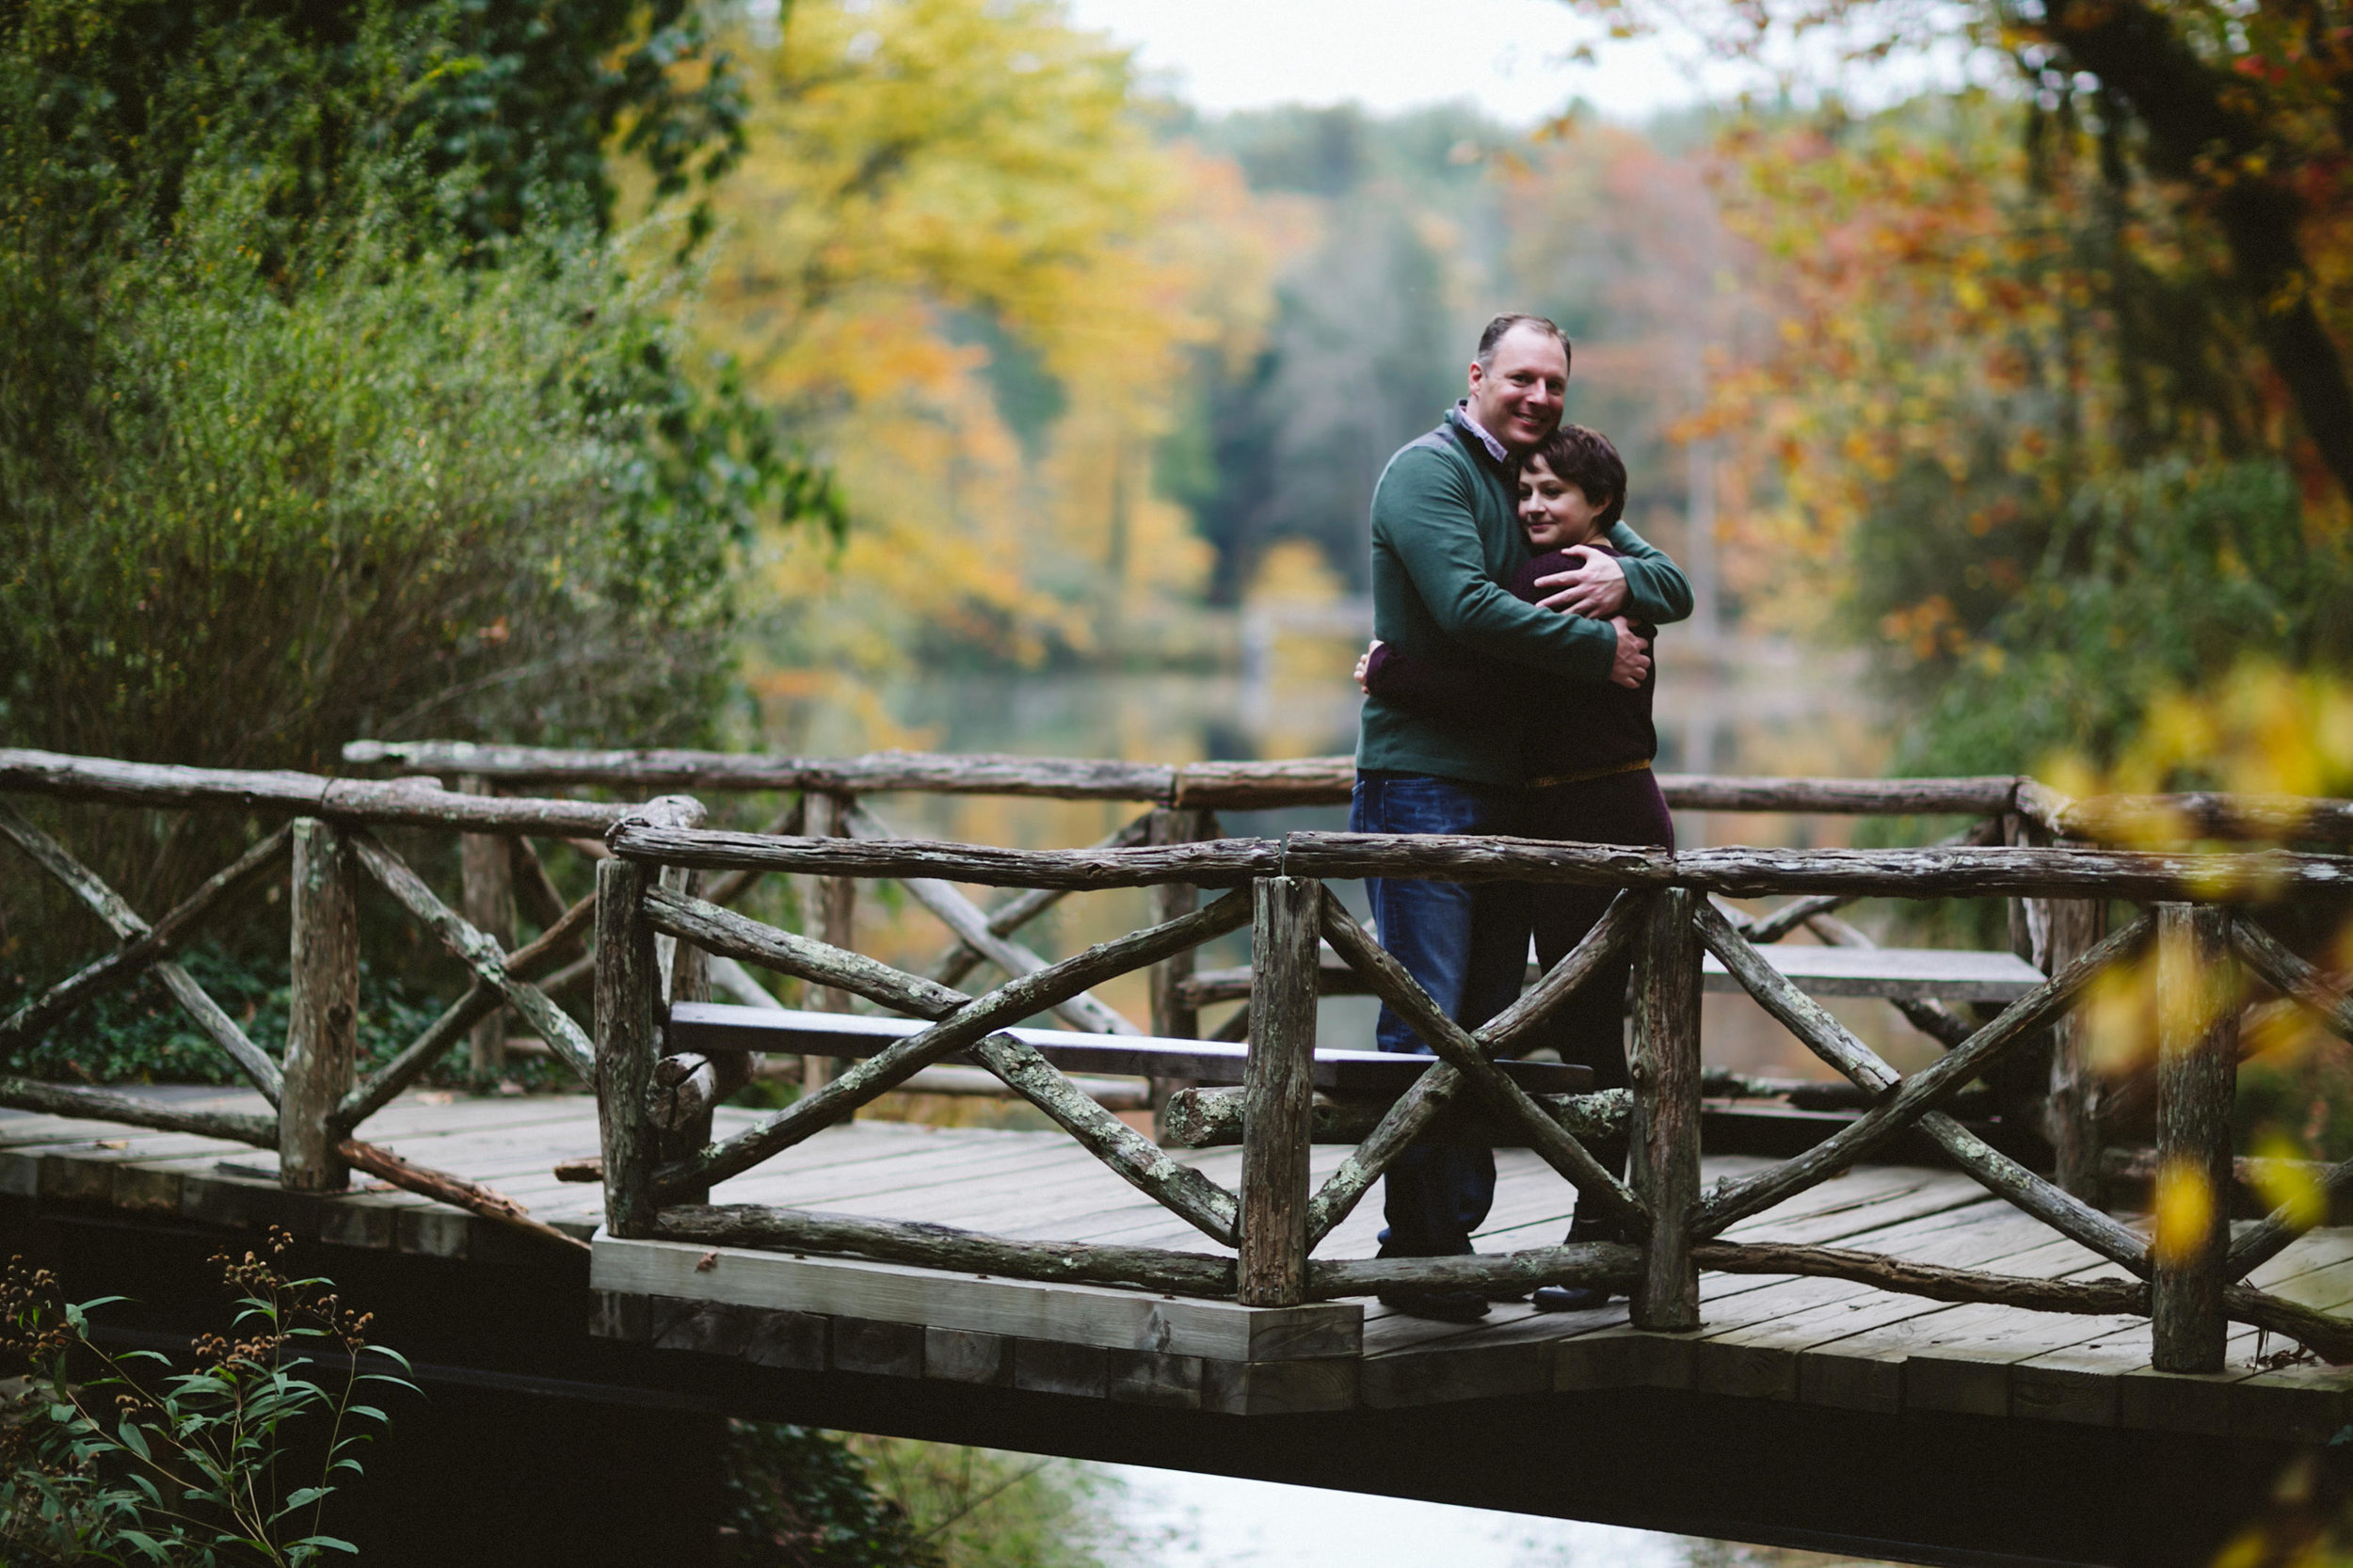 Nick of Blue Bend Photography took our engagement photos on the grounds of the Biltmore Estate in Asheville, NC.